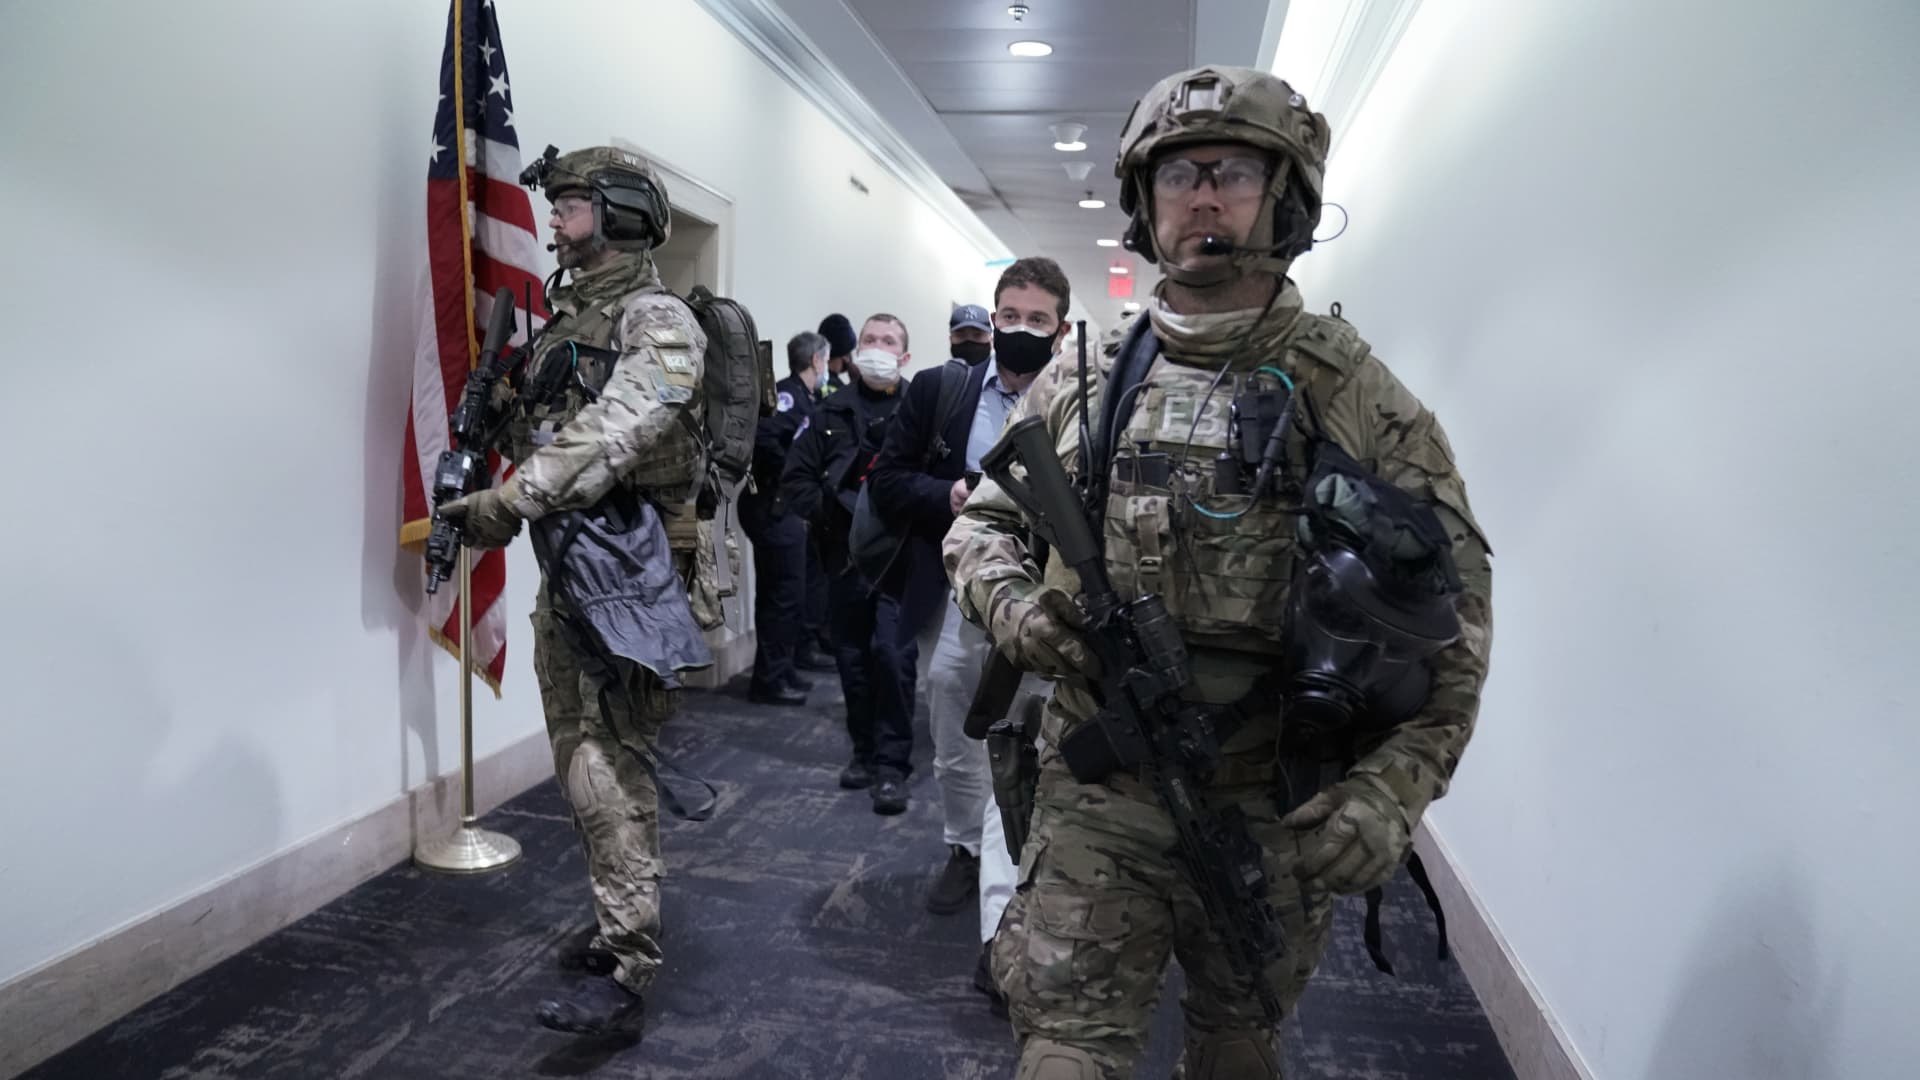 Members of the Federal Bureau of Investigation (FBI) swat team patrol the Longworth House Office building after a joint session of Congress to count the votes of the 2020 presidential election took place in Washington, D.C., U.S., on Wednesday, Jan. 6, 2021.